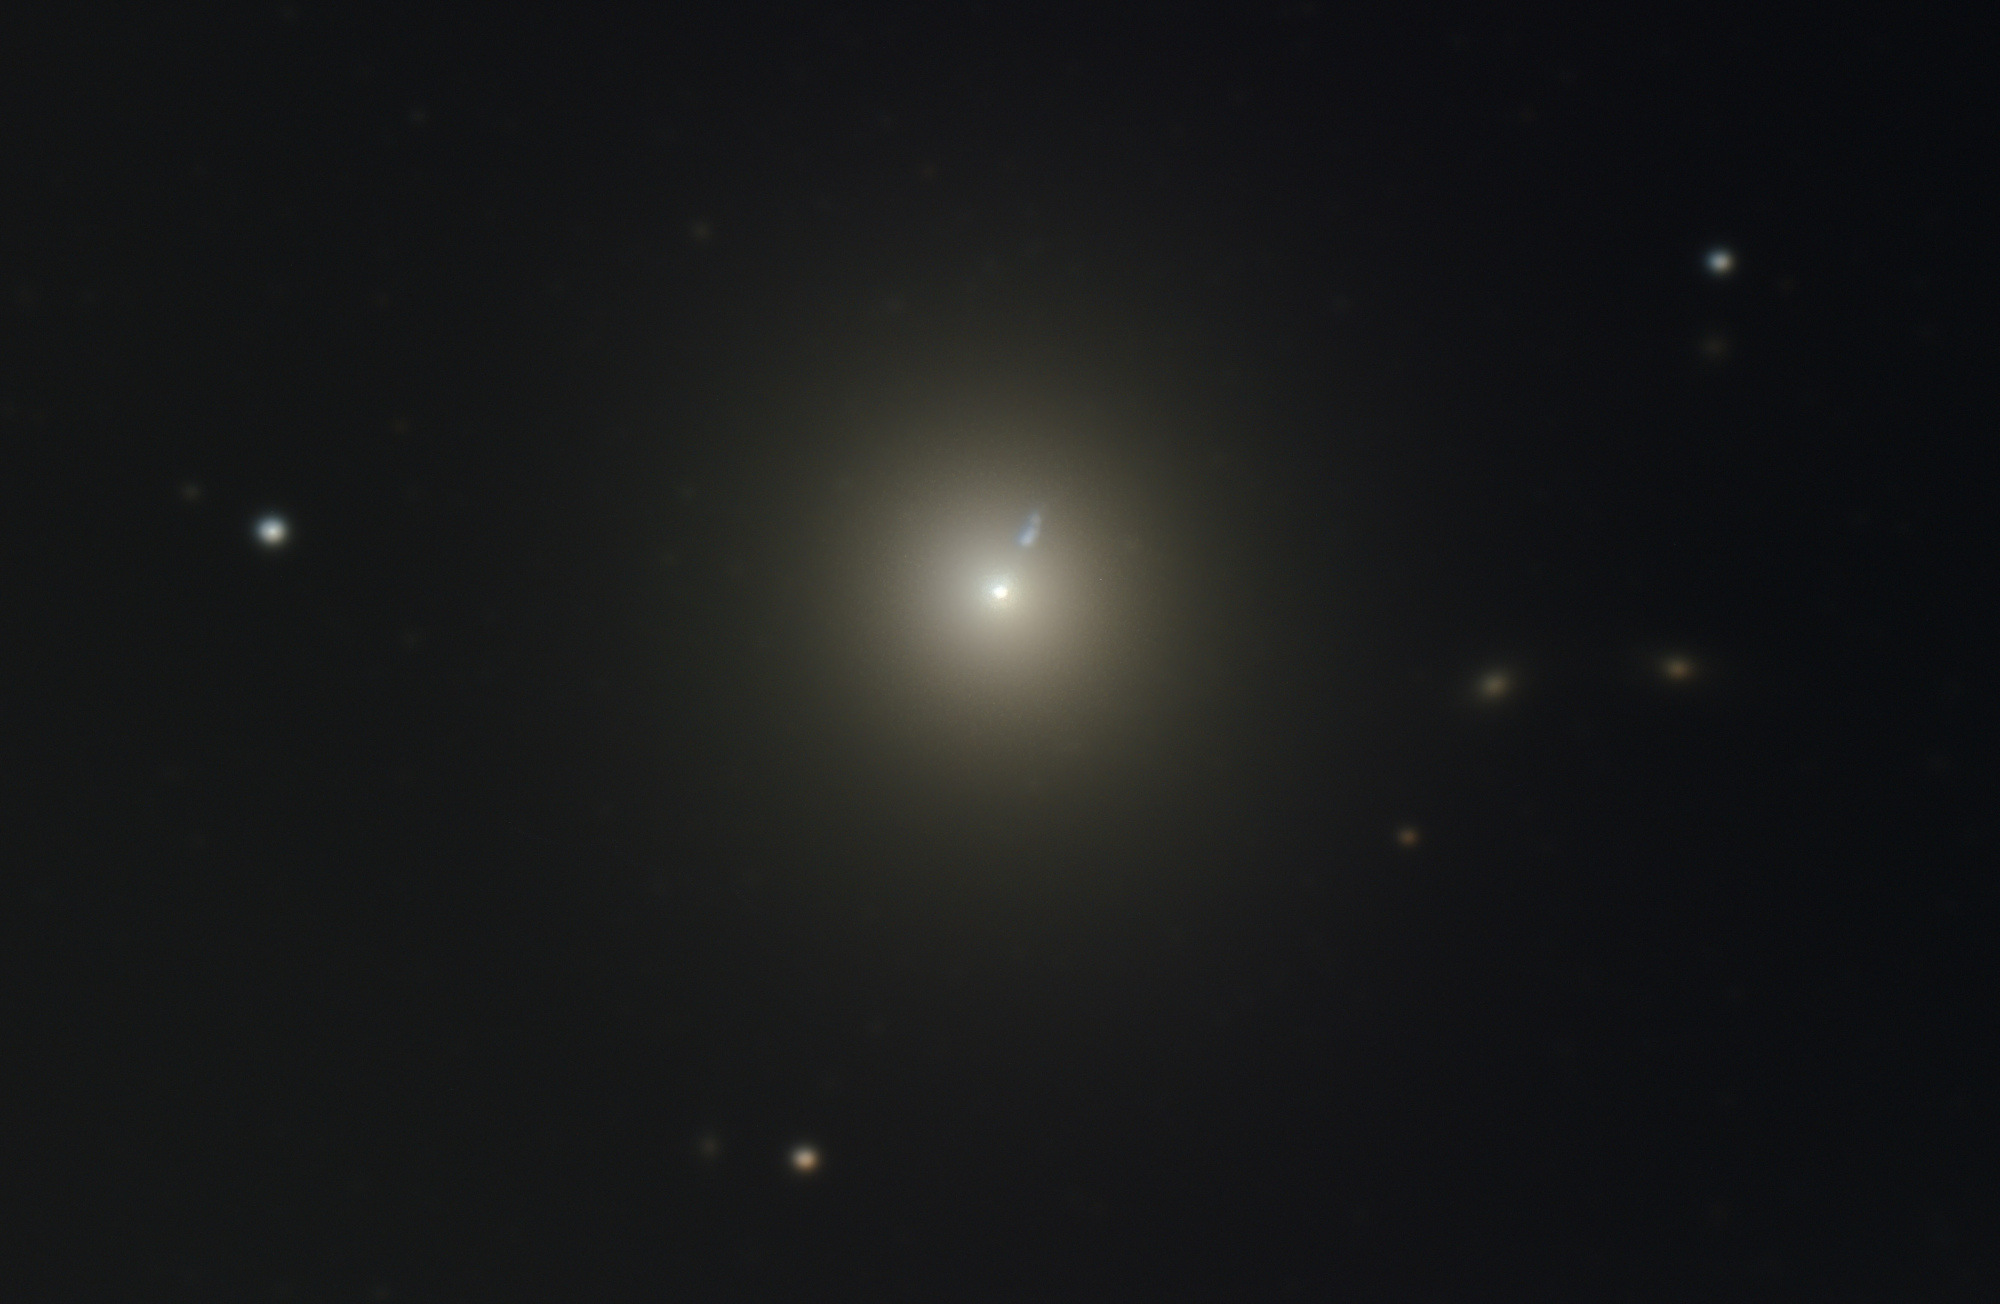 M 87 320 x 30 sec 4000 ISO FT Crop Final.jpg